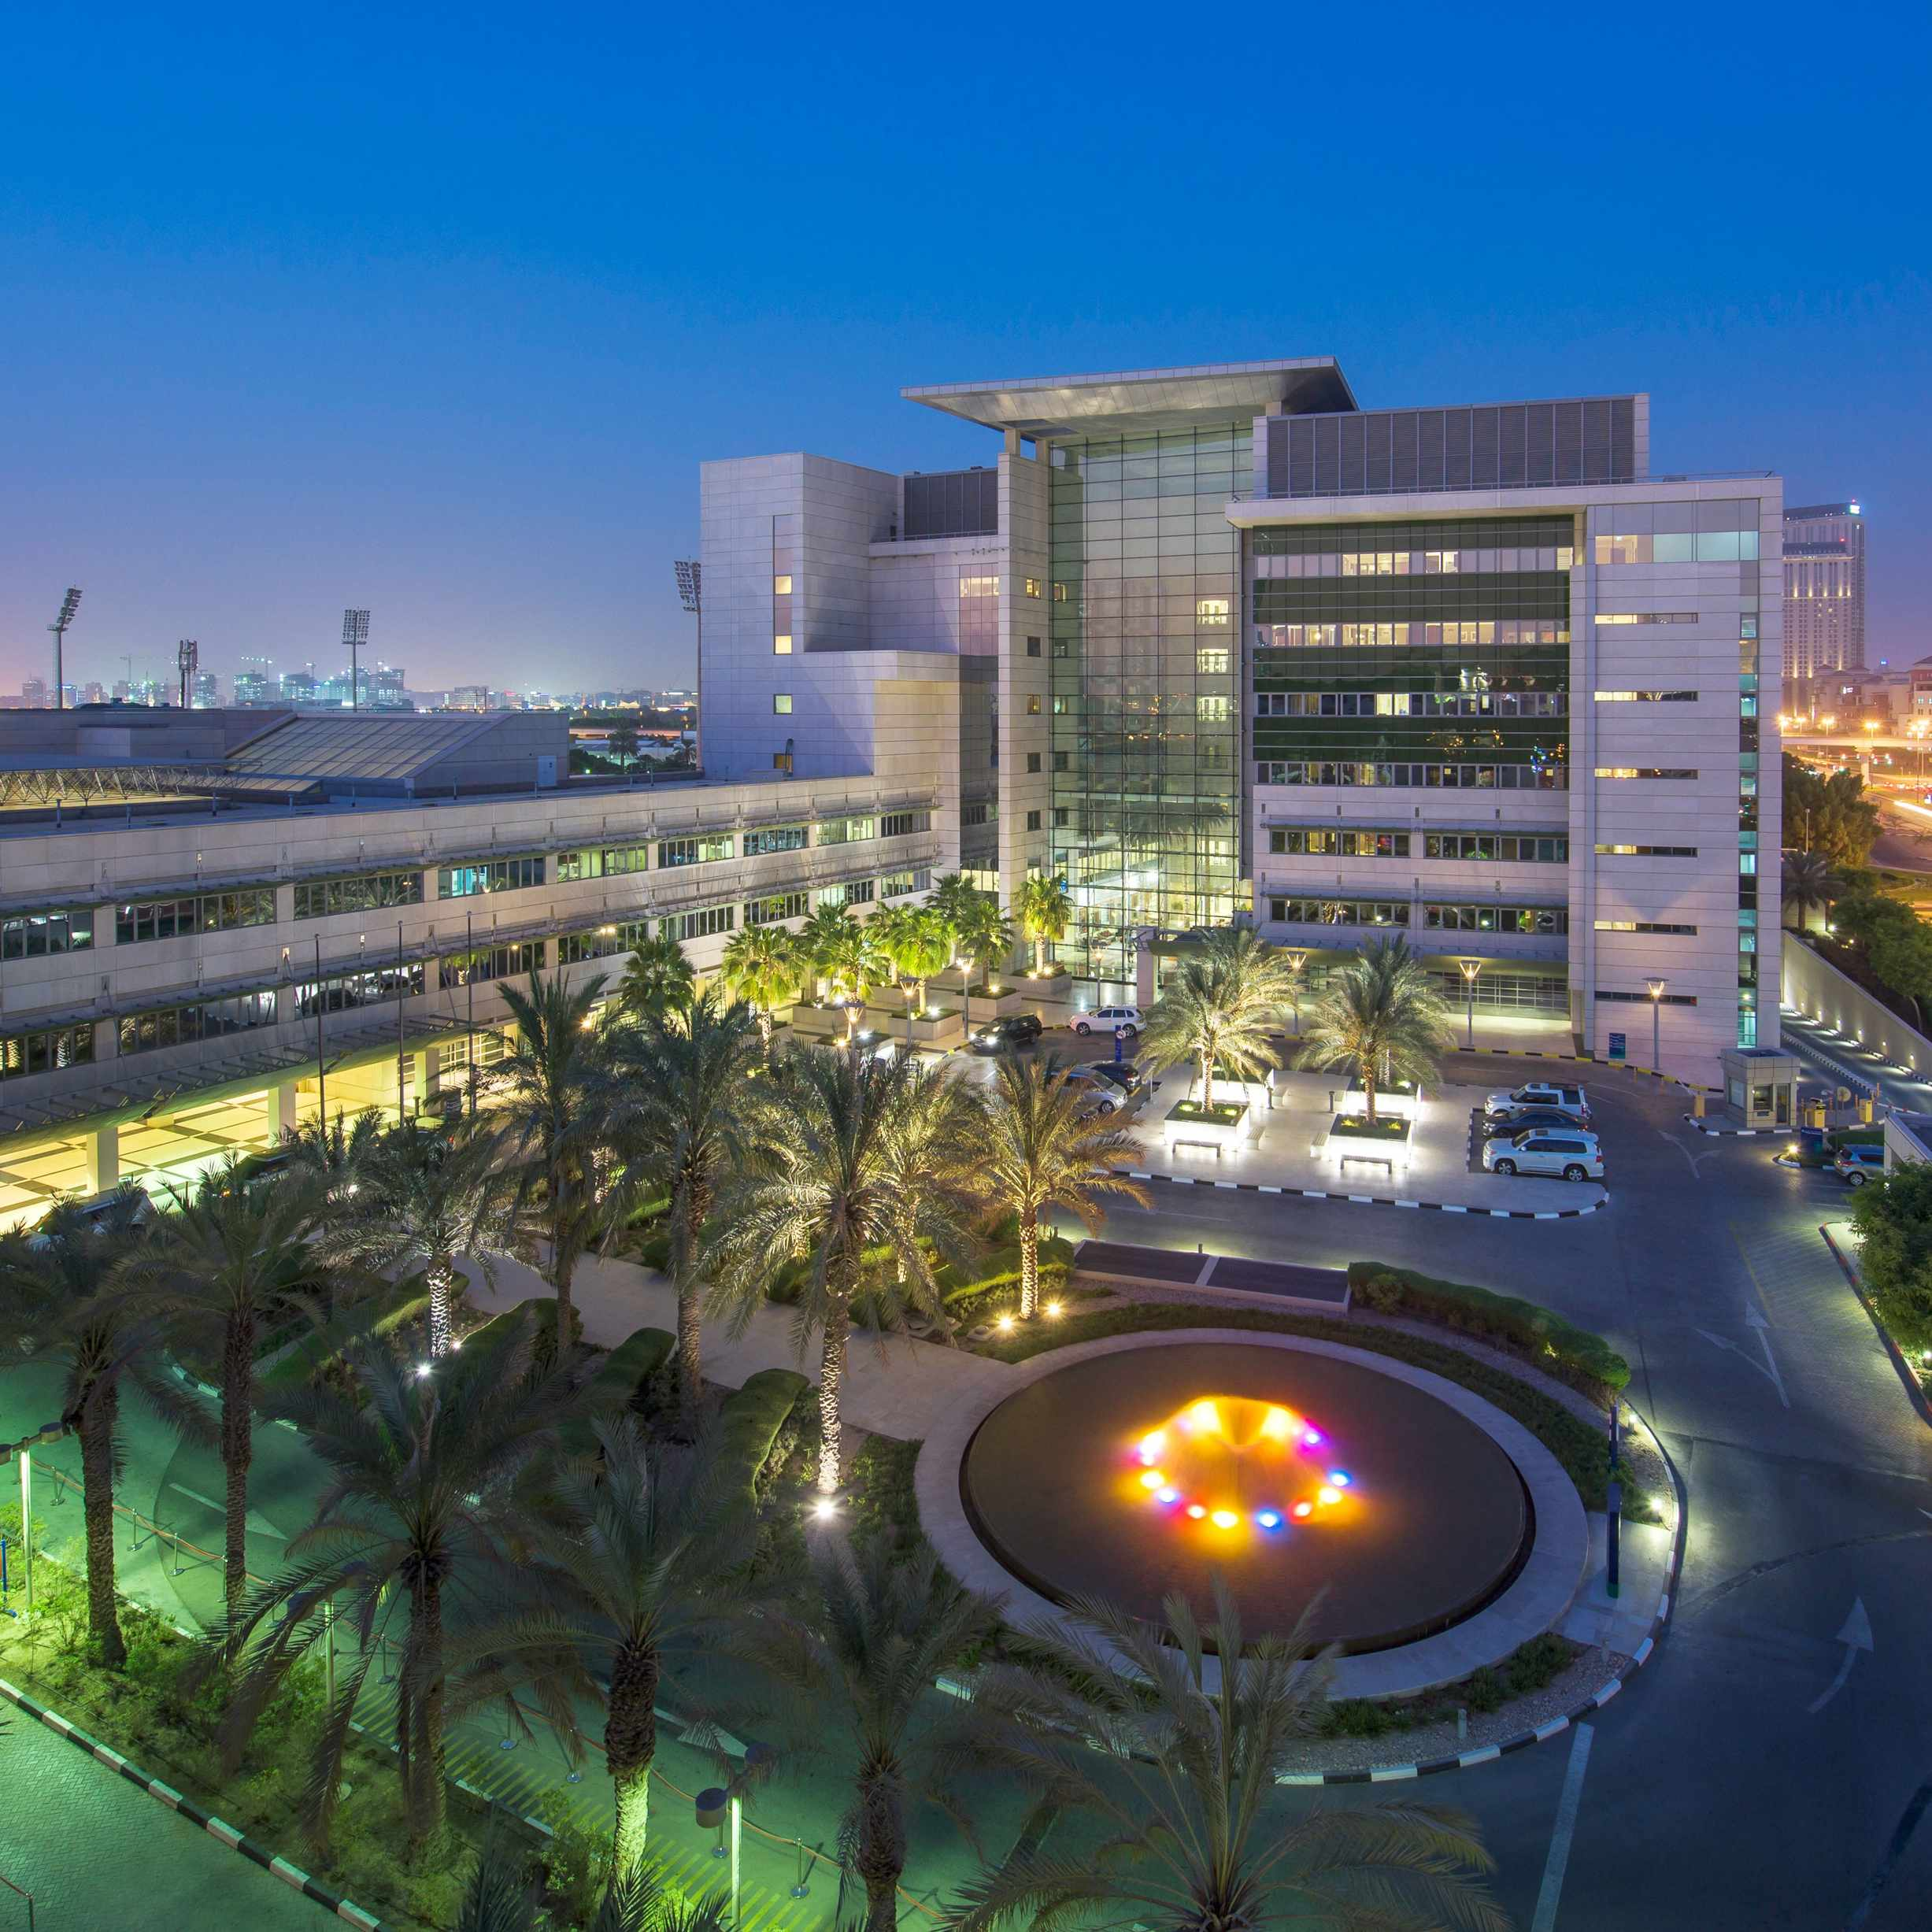 Exterior shot of American Hospital Dubai